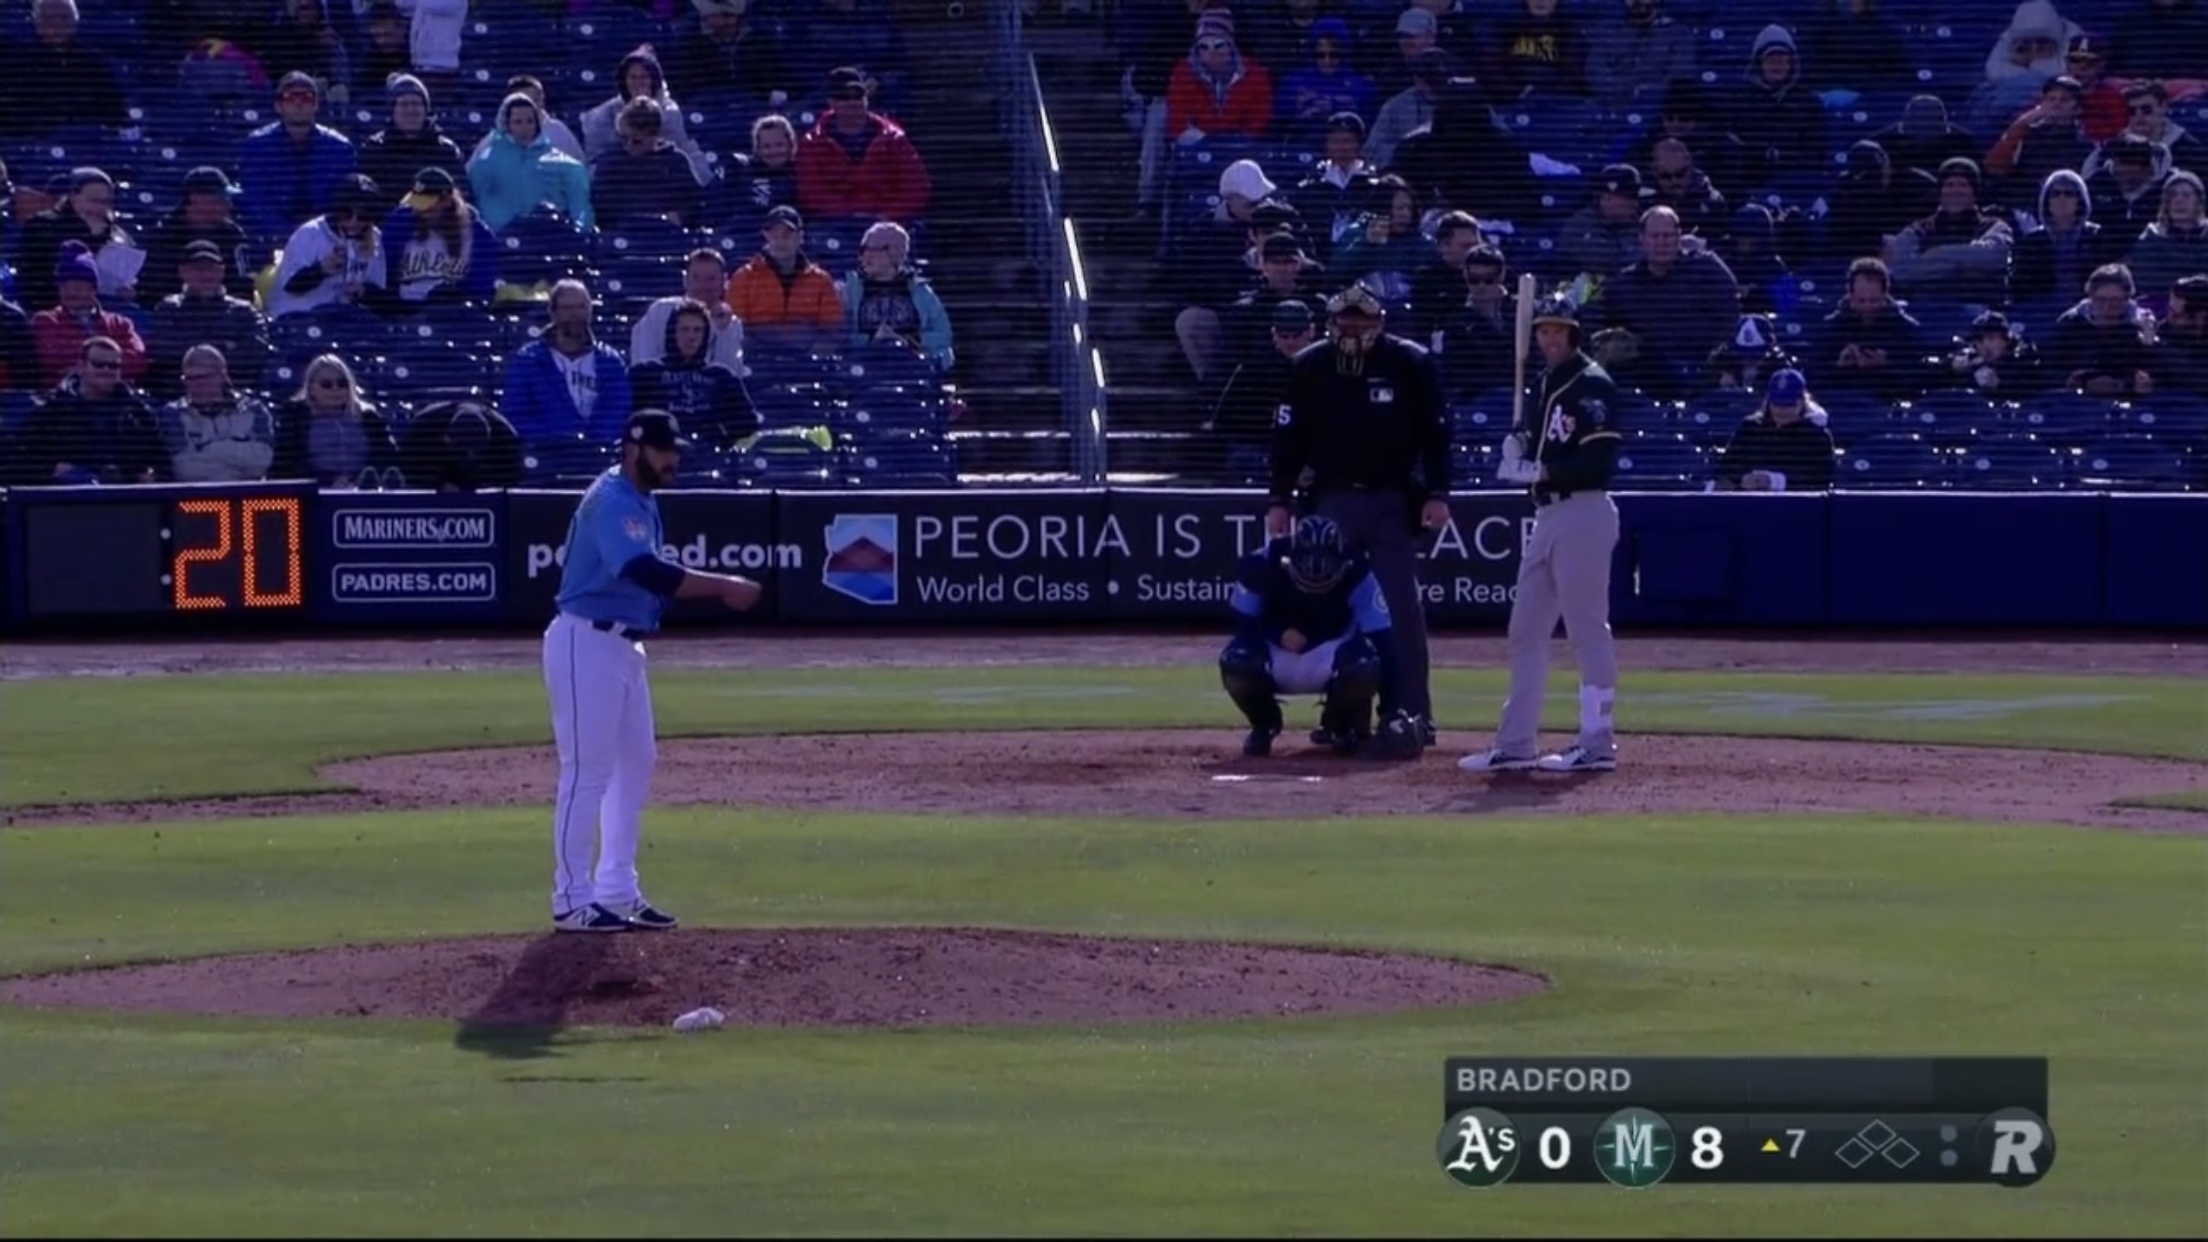 MLB is testing pitch clock in spring training, hoping to add it for the 2019 regular season